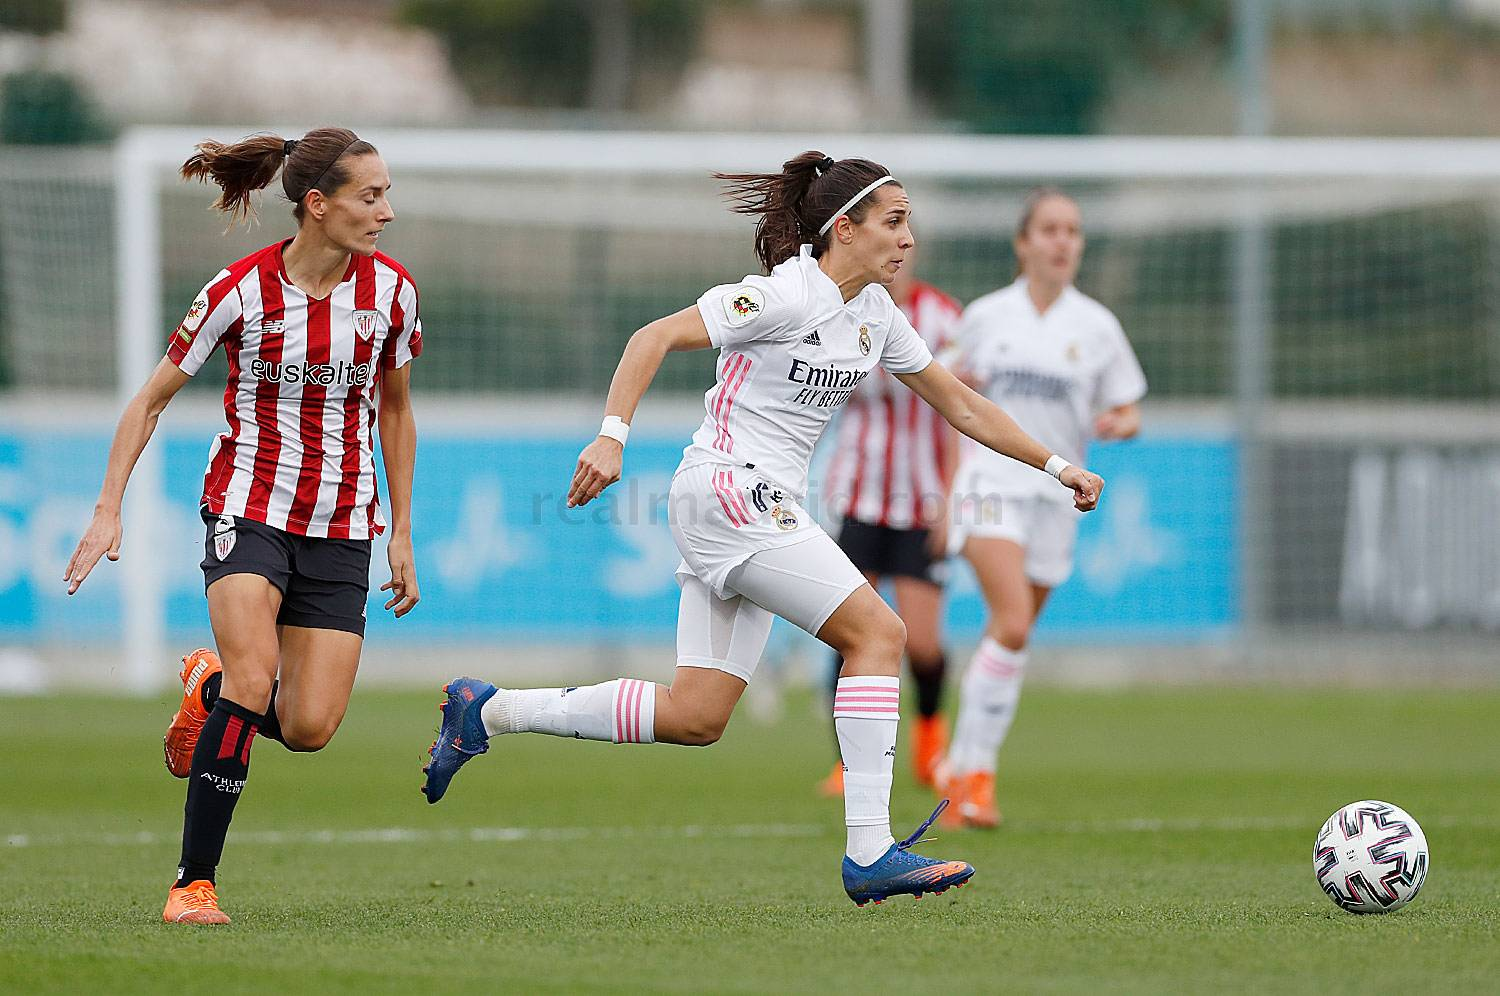 Real Madrid - Real Madrid - Athletic Club - 15-11-2020